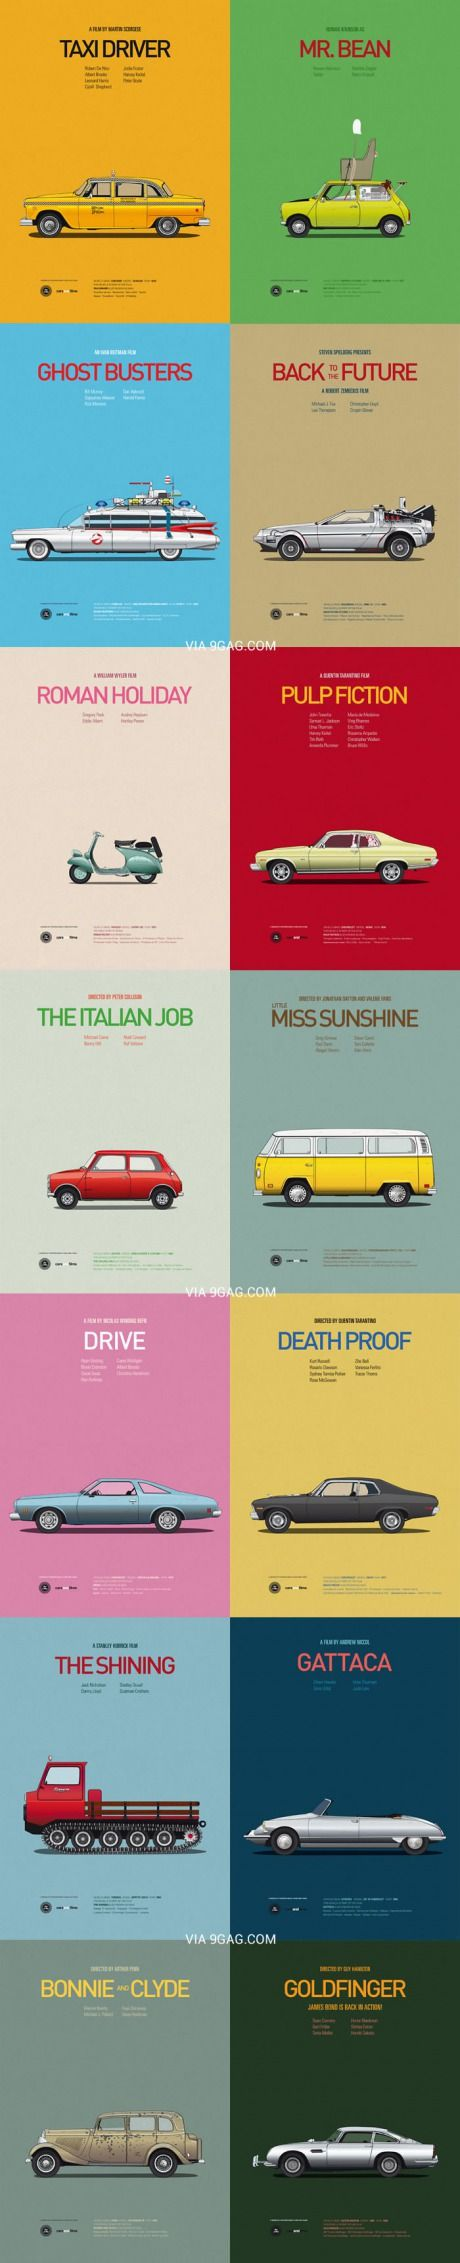 Famous Cars In Movies - 9GAG